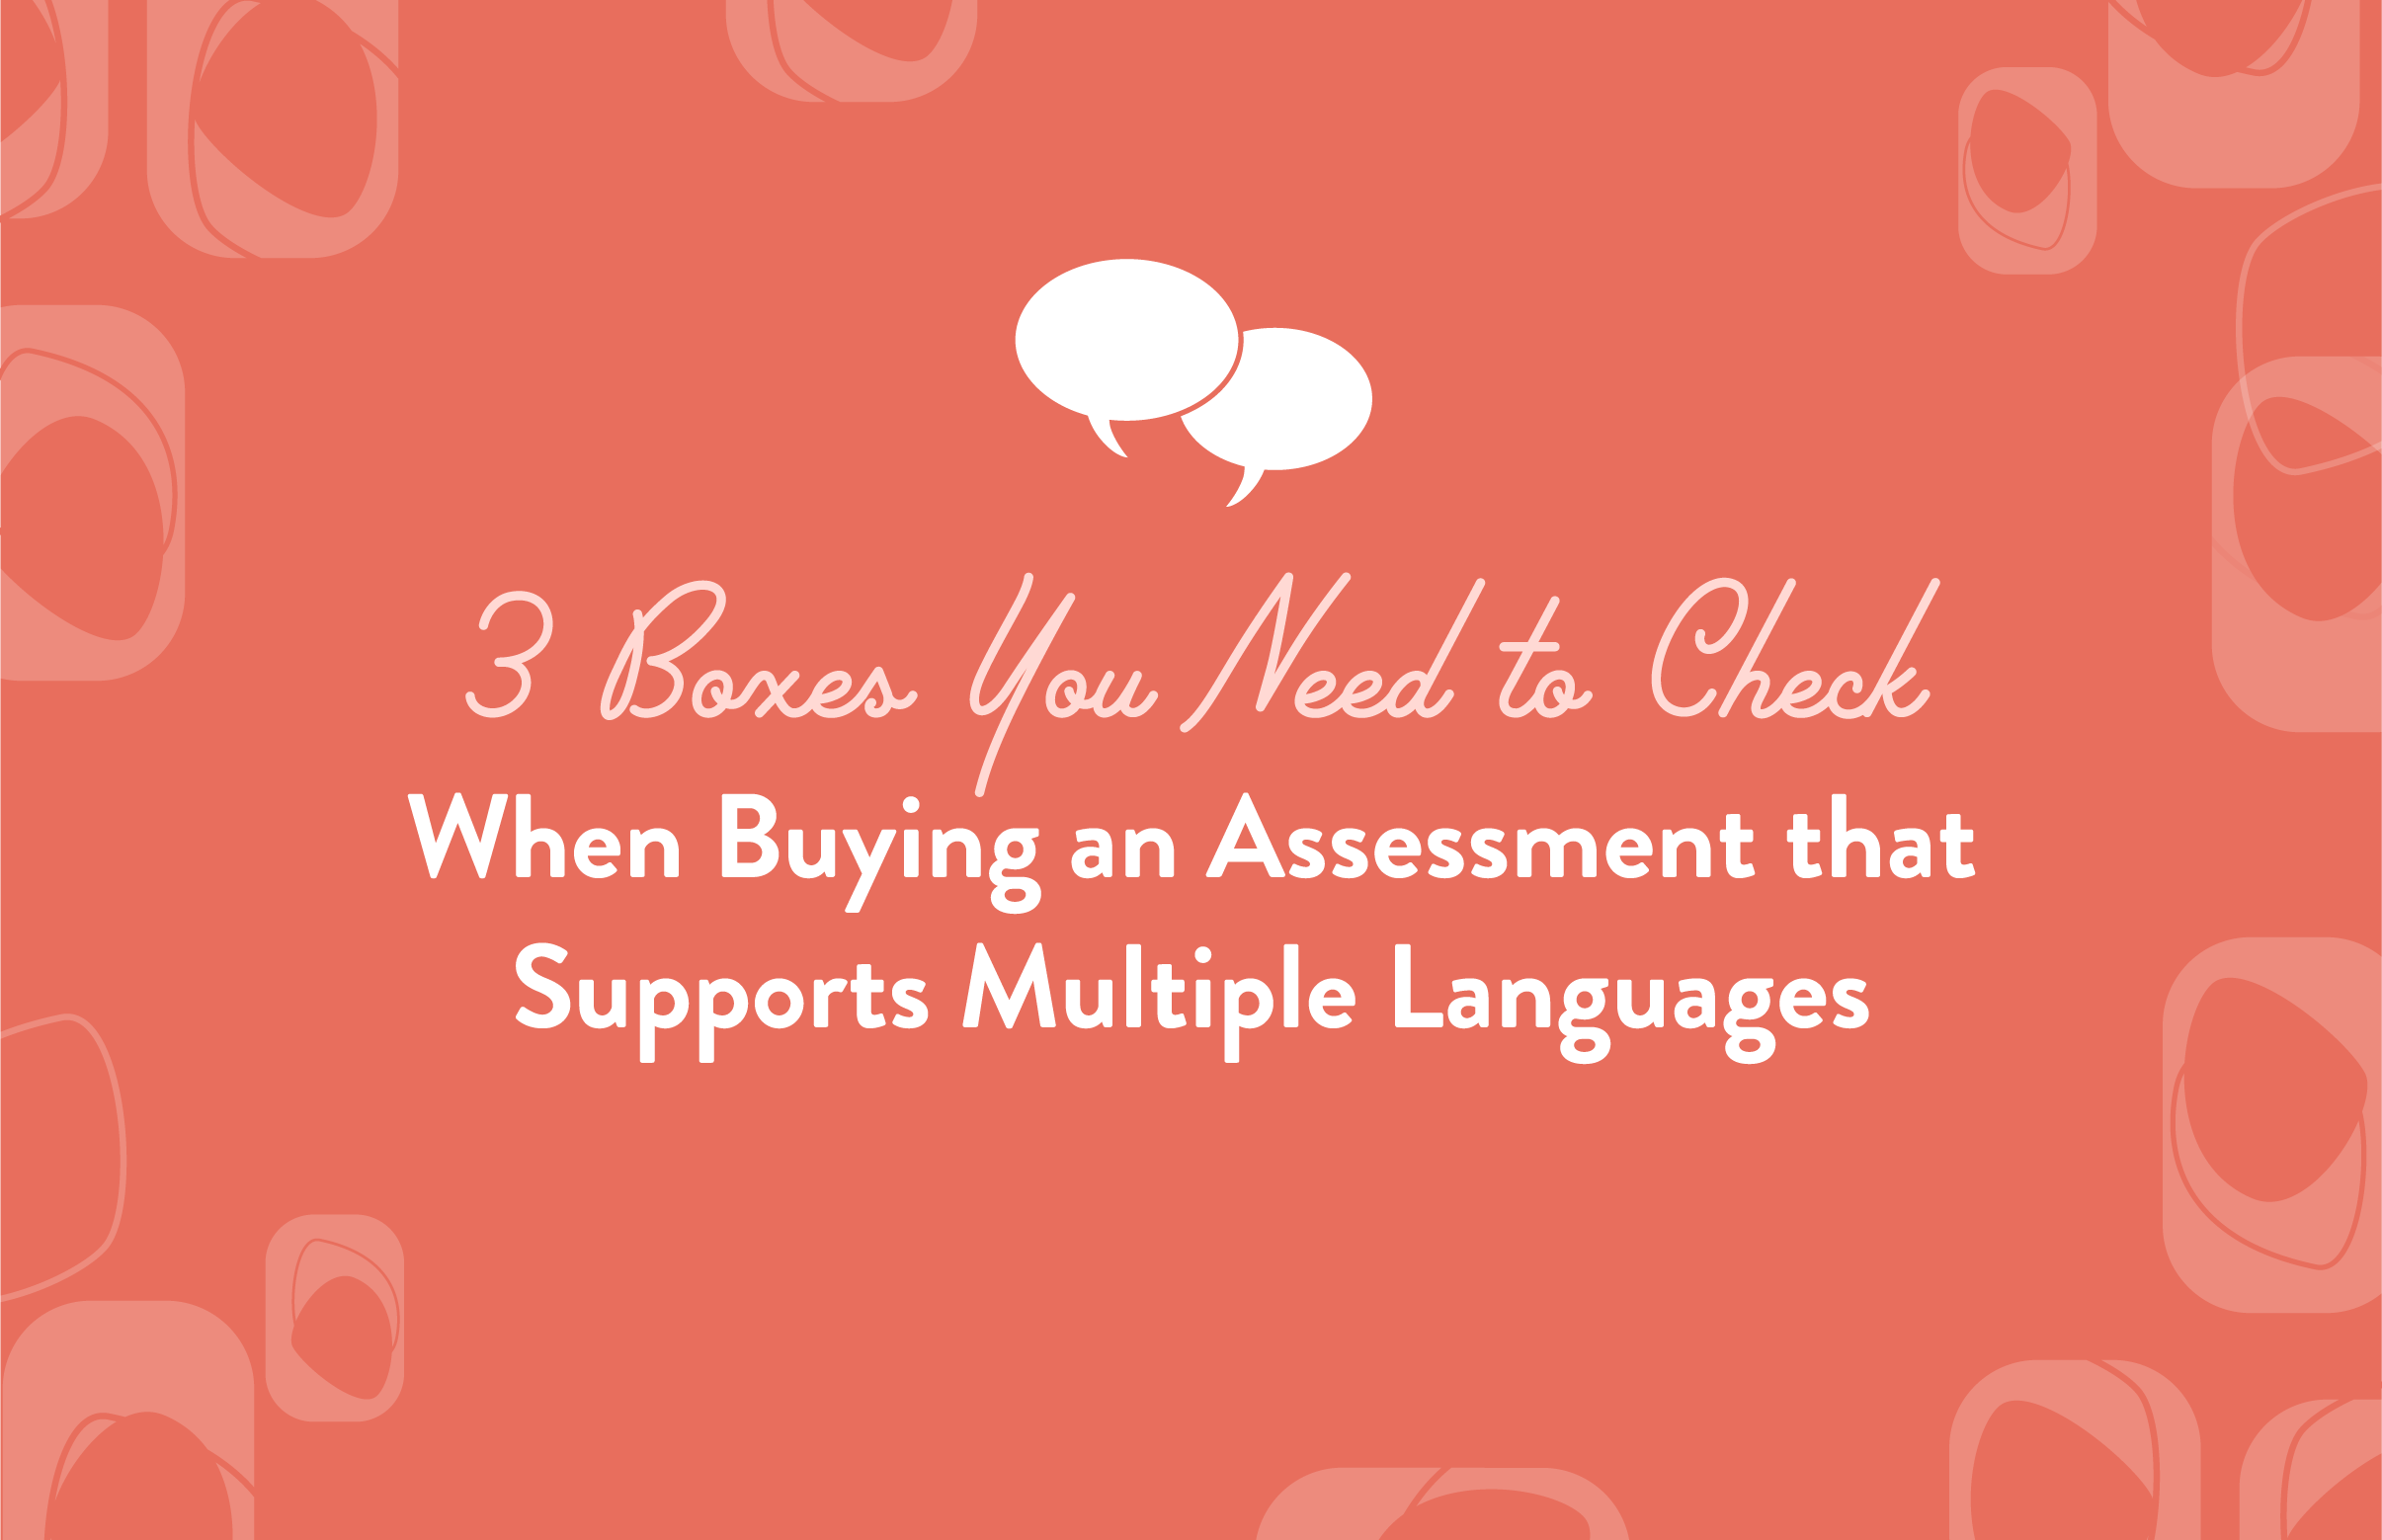 3 Boxes You Need to Check When Buying an Assessment that Supports Multiple Languages